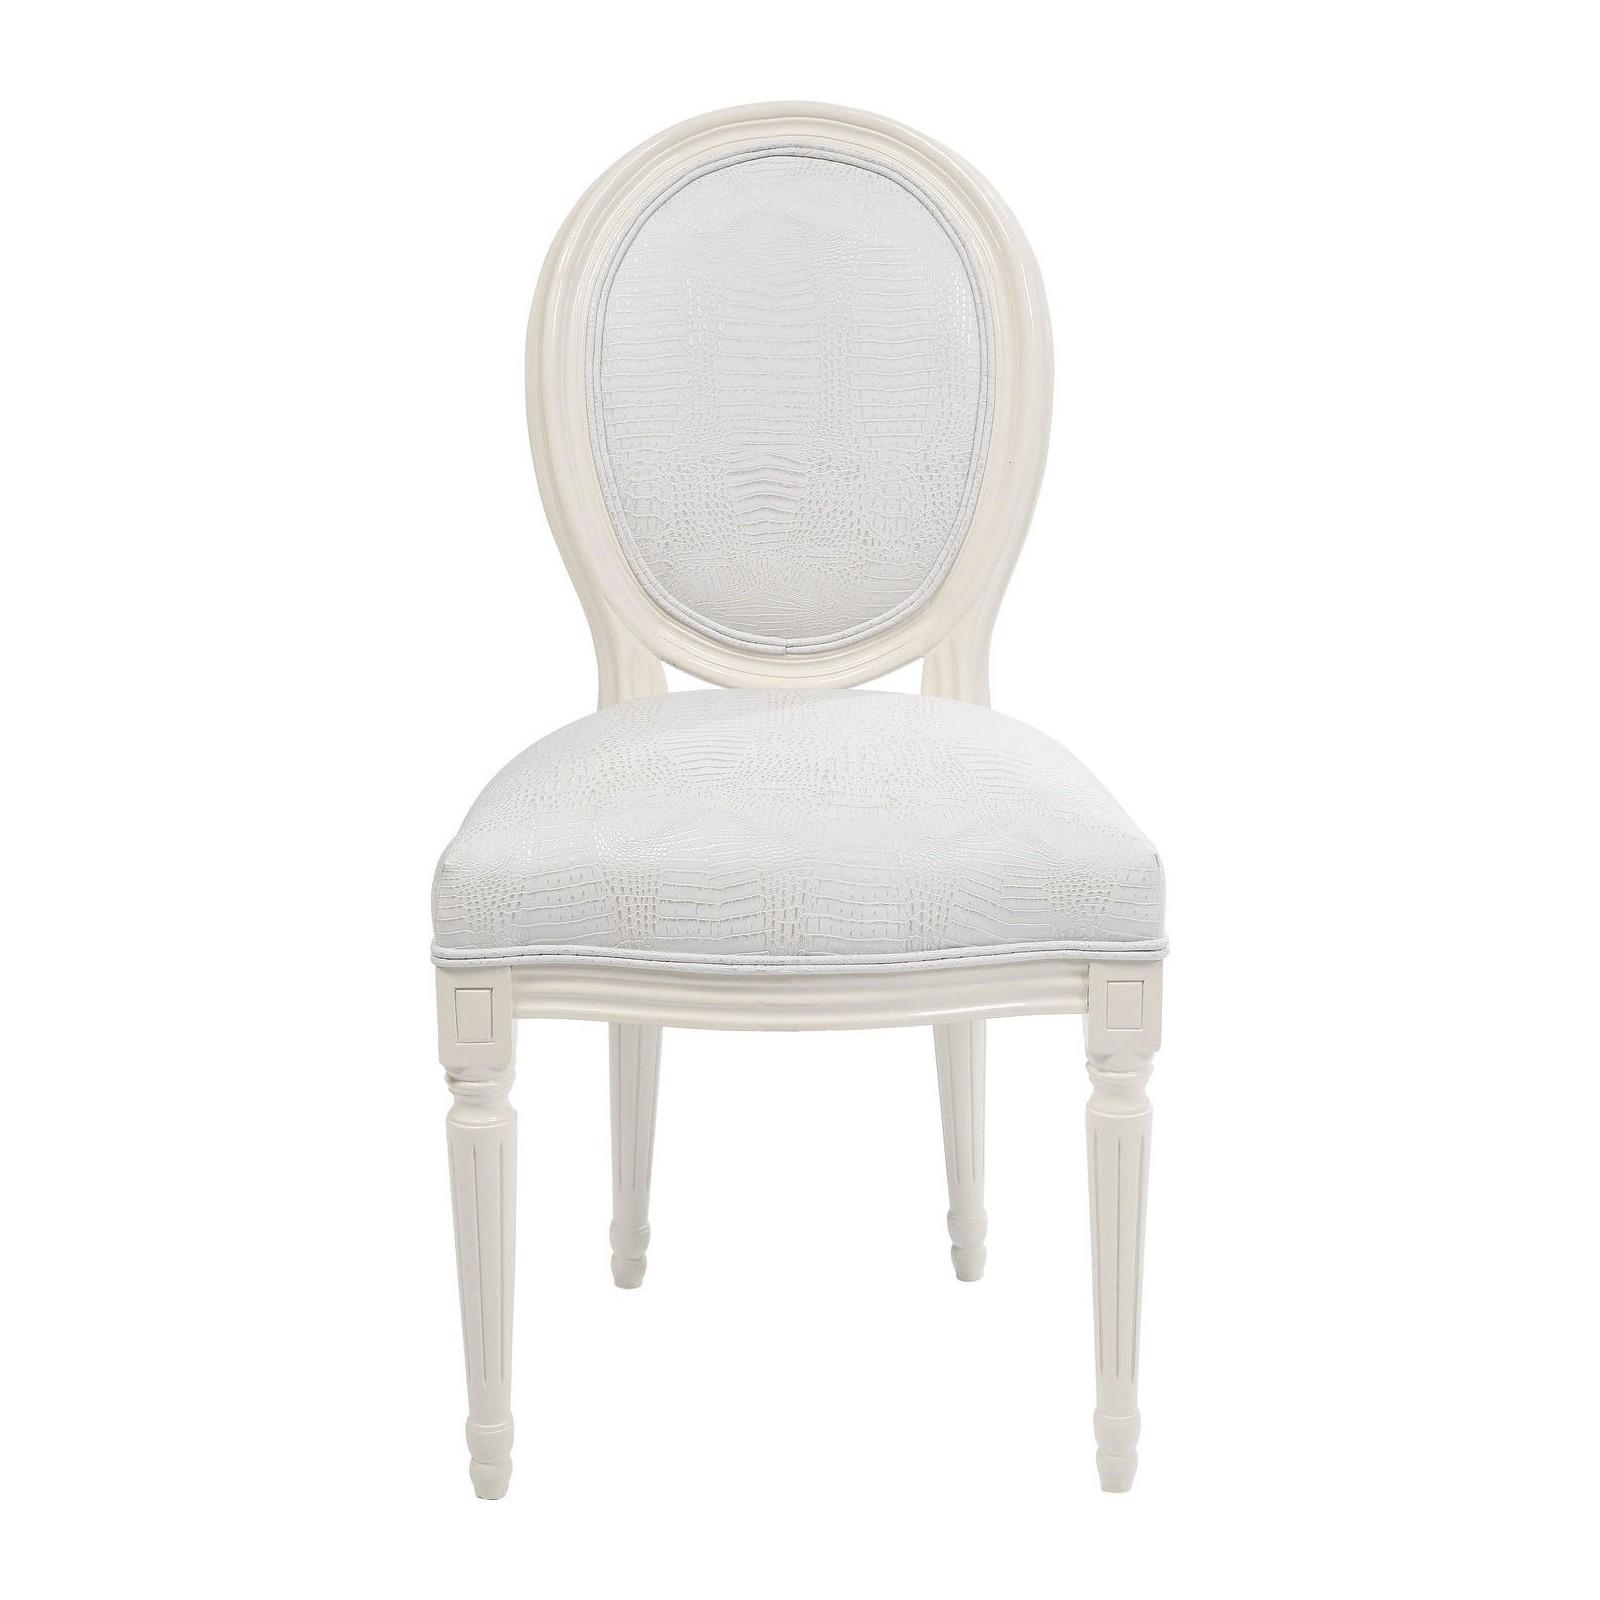 Chaise baroque blanche louis kare design - Chaise baroque ...